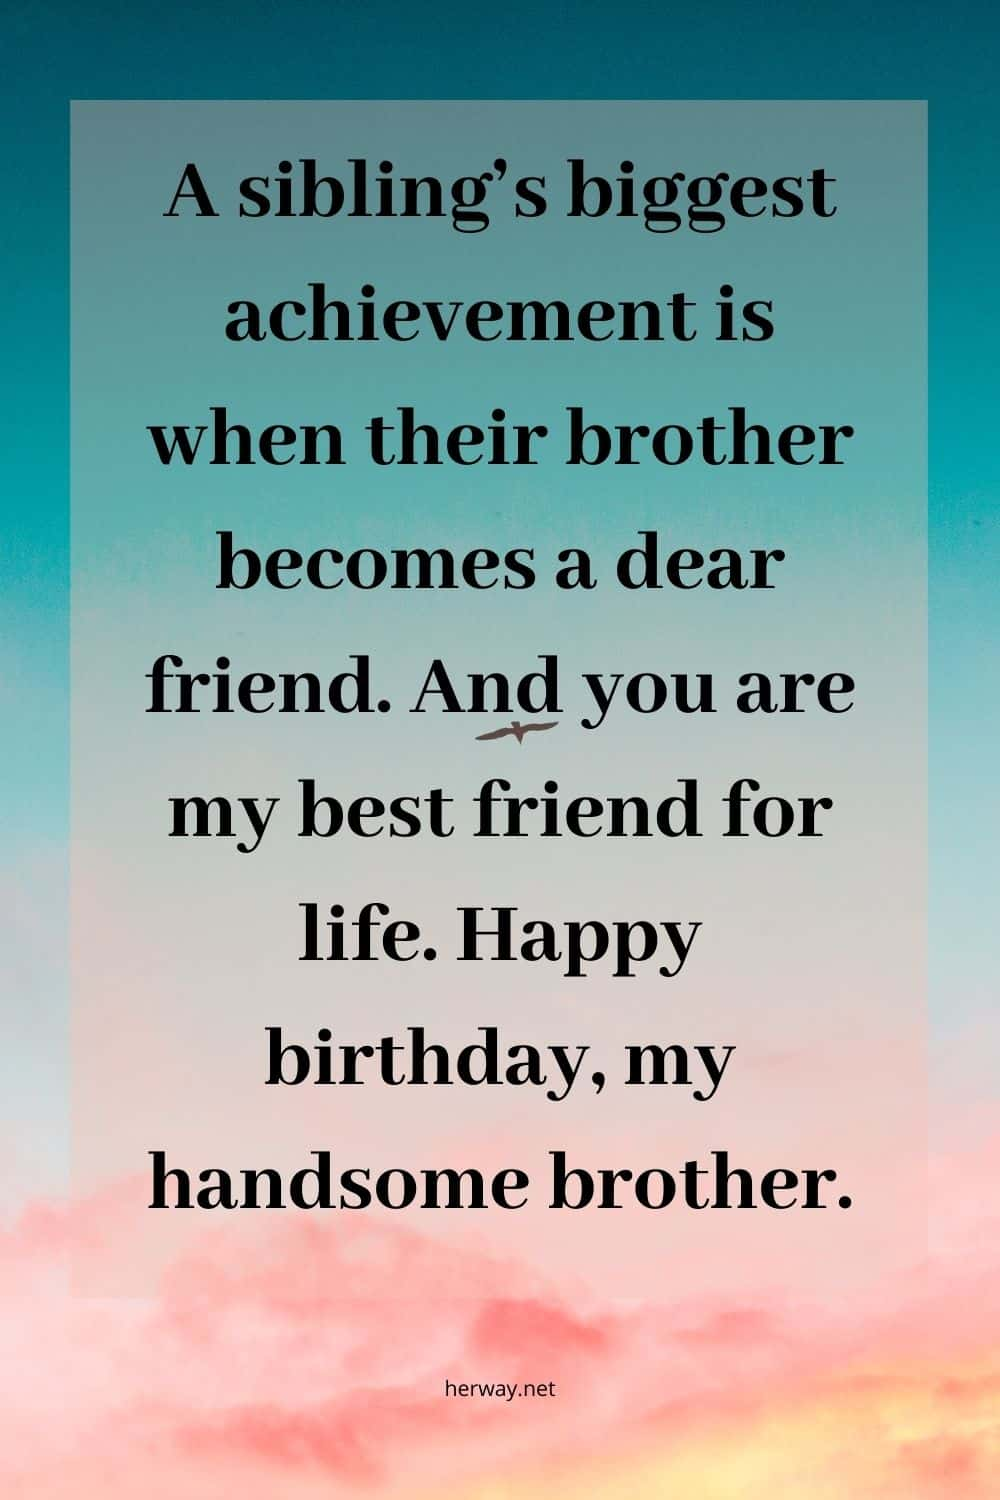 Birthday Wishes For Brother 150+ Wishes For His Special Day pinterest